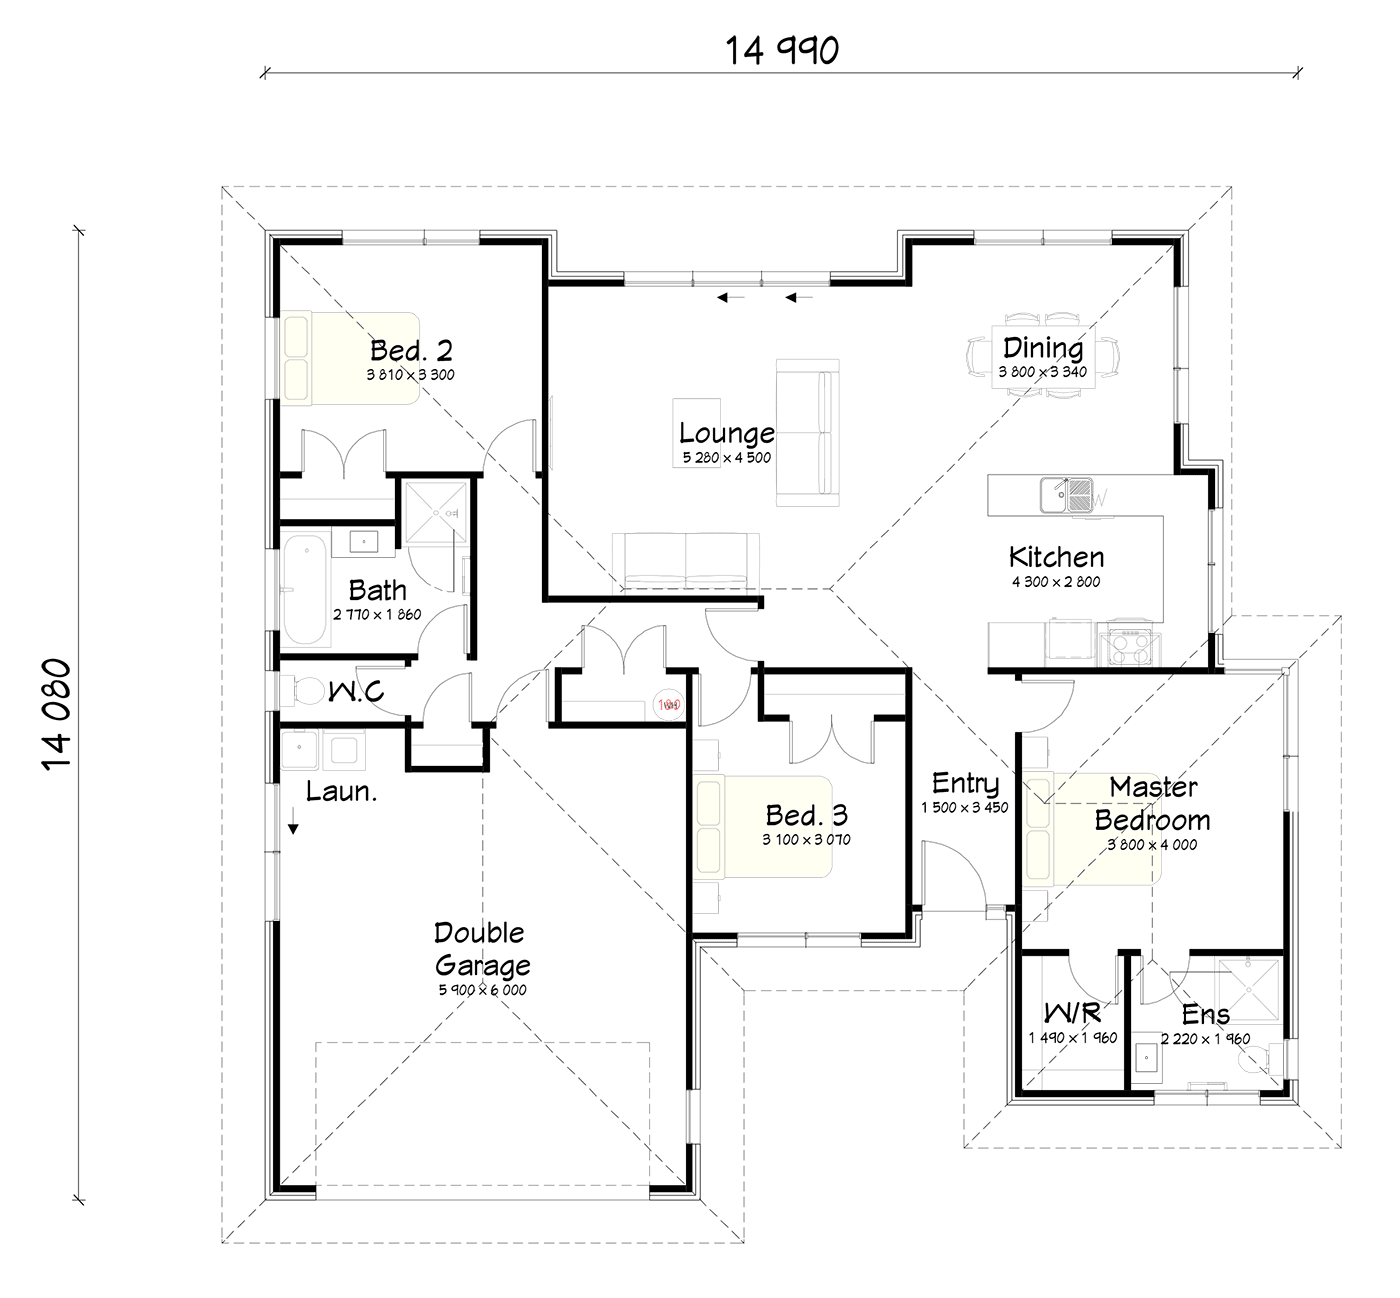 FH177 floor plan